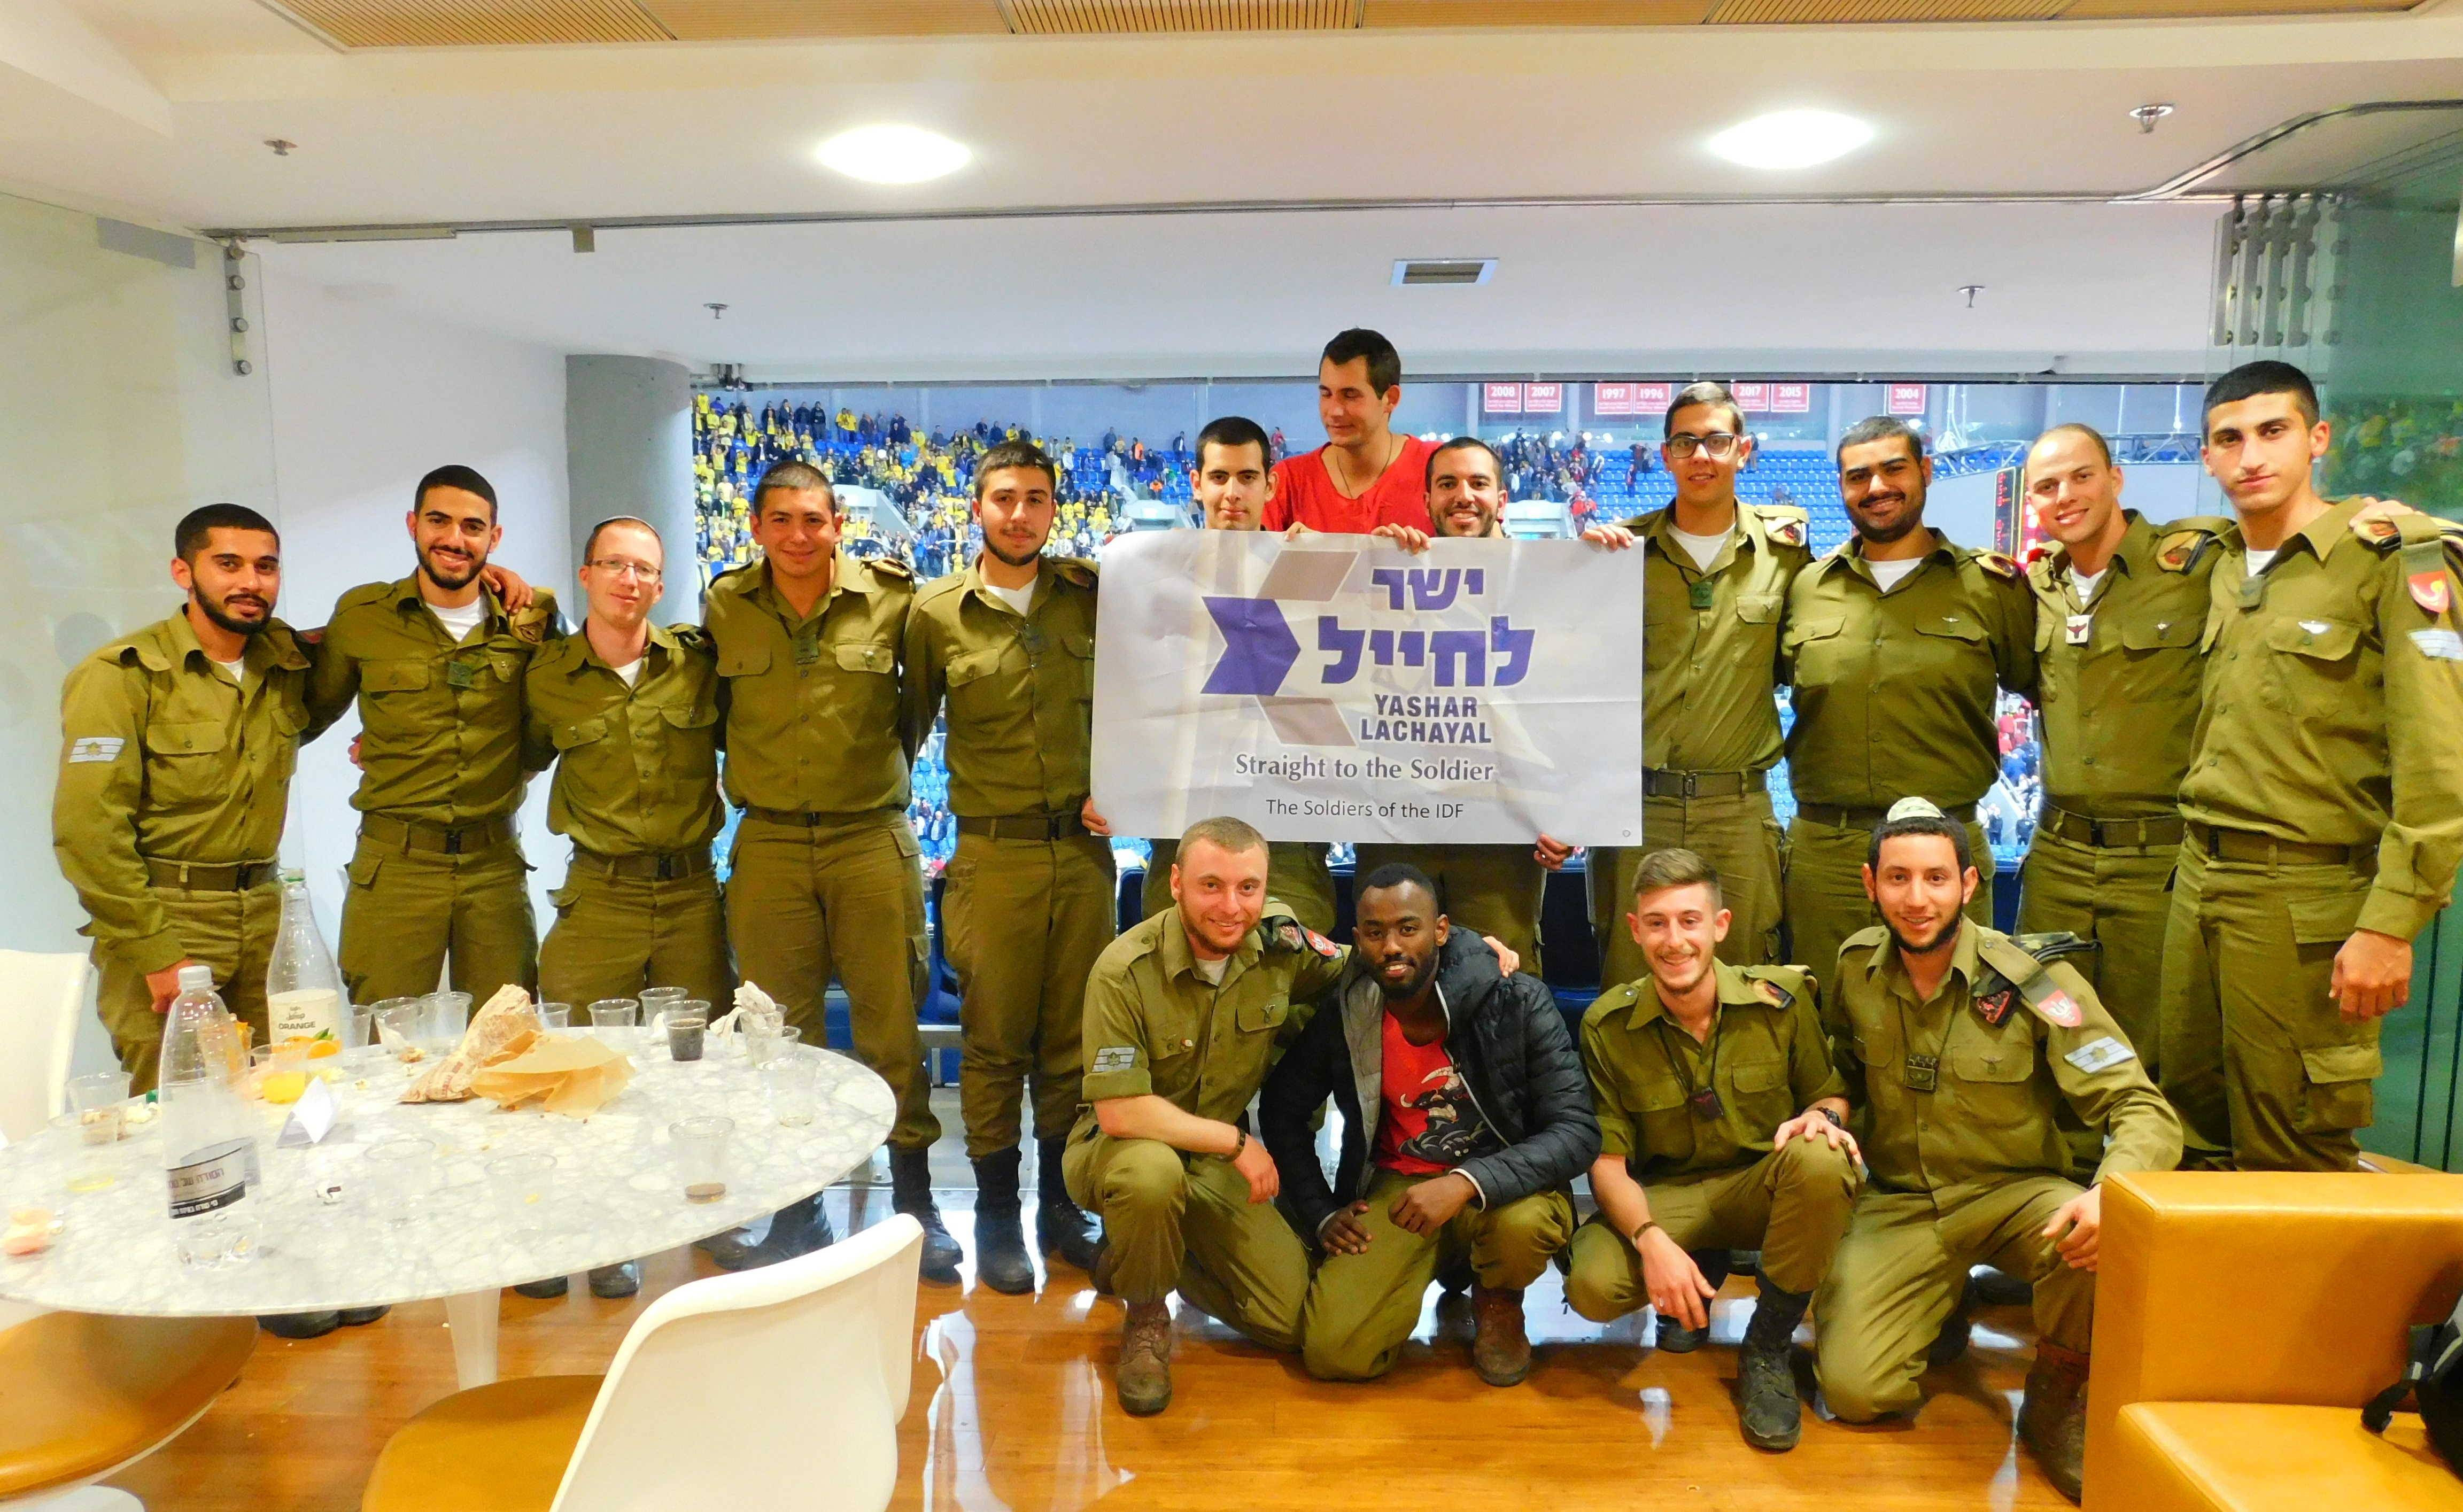 A group of IDF soldiers pose in the VIP box at a sport stadium.